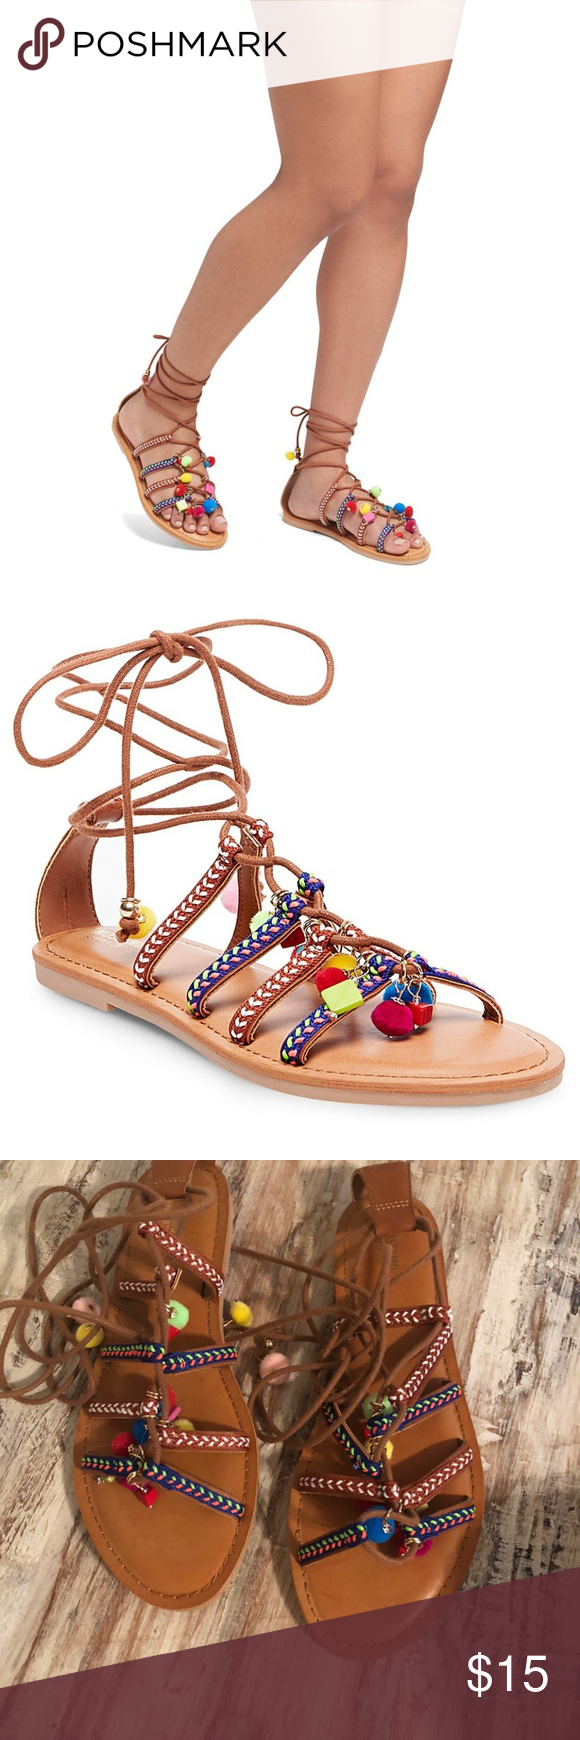 476abb2d96f Target Missimo Supply Co Kayla Gladiator Sandals Never worn!   Embroidered  gladiator straps   Ghillie-style lace-up design   Cushioned insole for  all-day ...